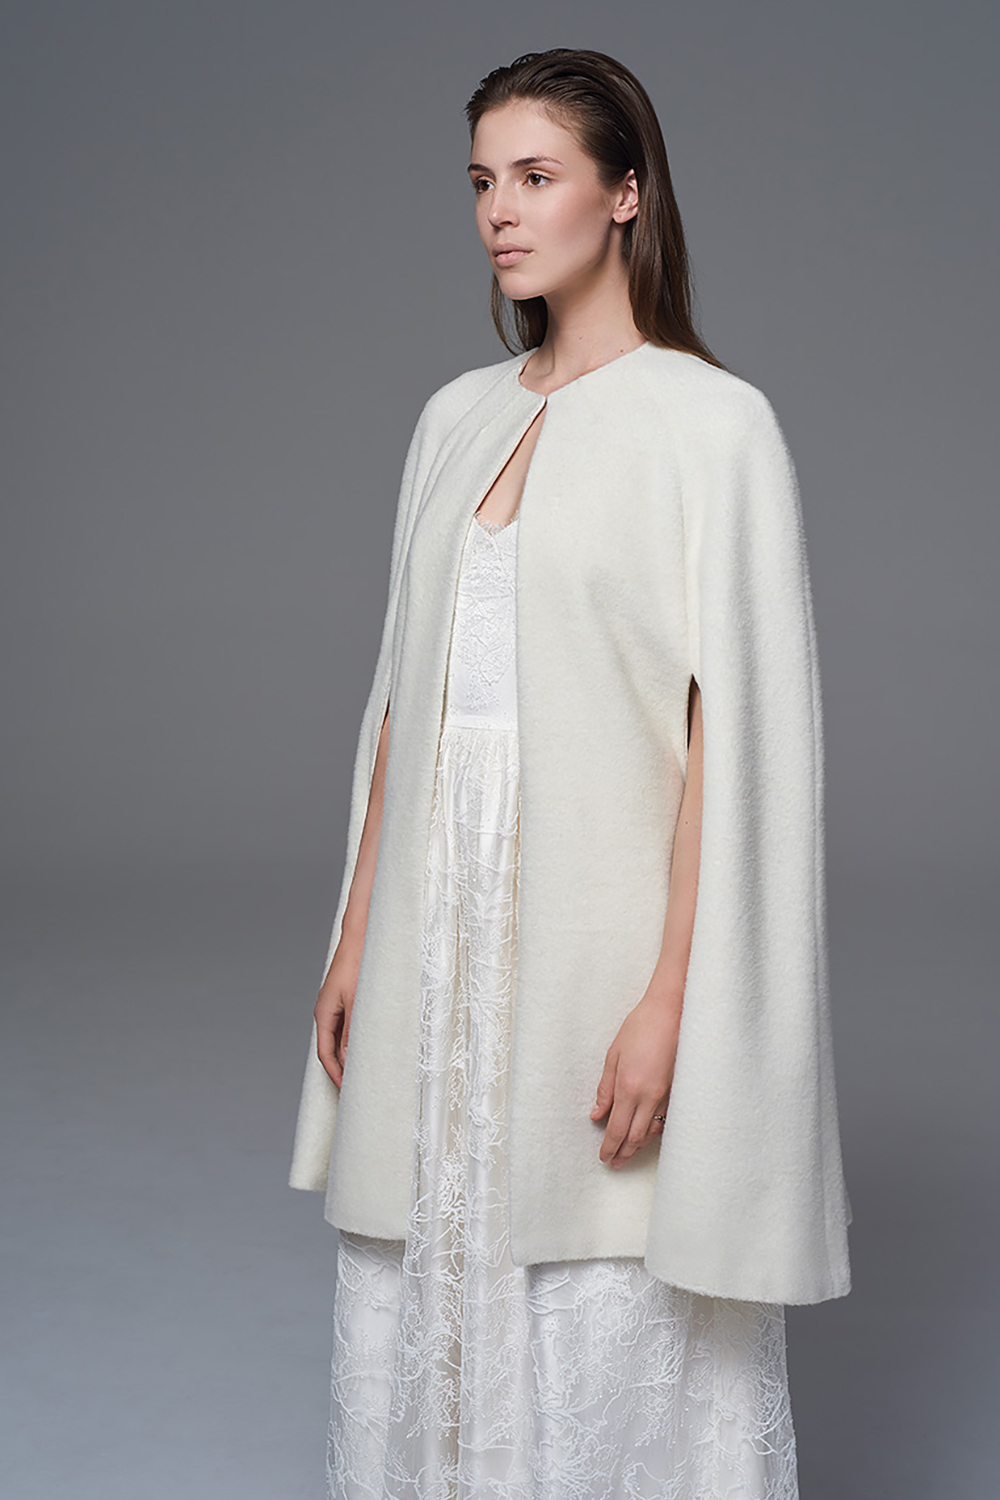 THE WOOL CAPE BRIDAL WEDDING DRESS BY HALFPENNY LONDON